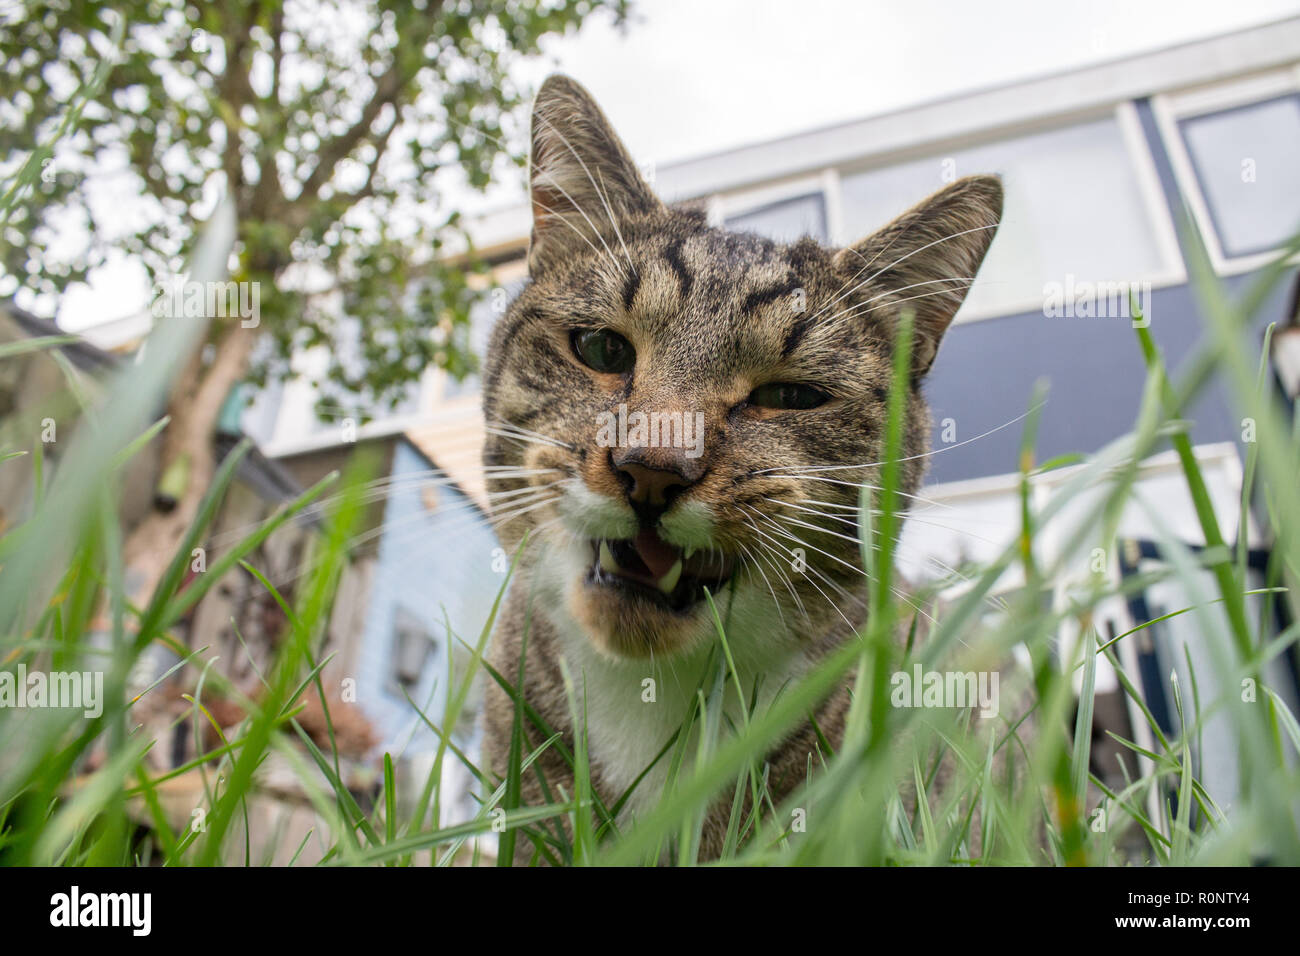 Cat eating fresh grass in the back yard. You can clearly see his eating in action with his teeth exposed. - Stock Image